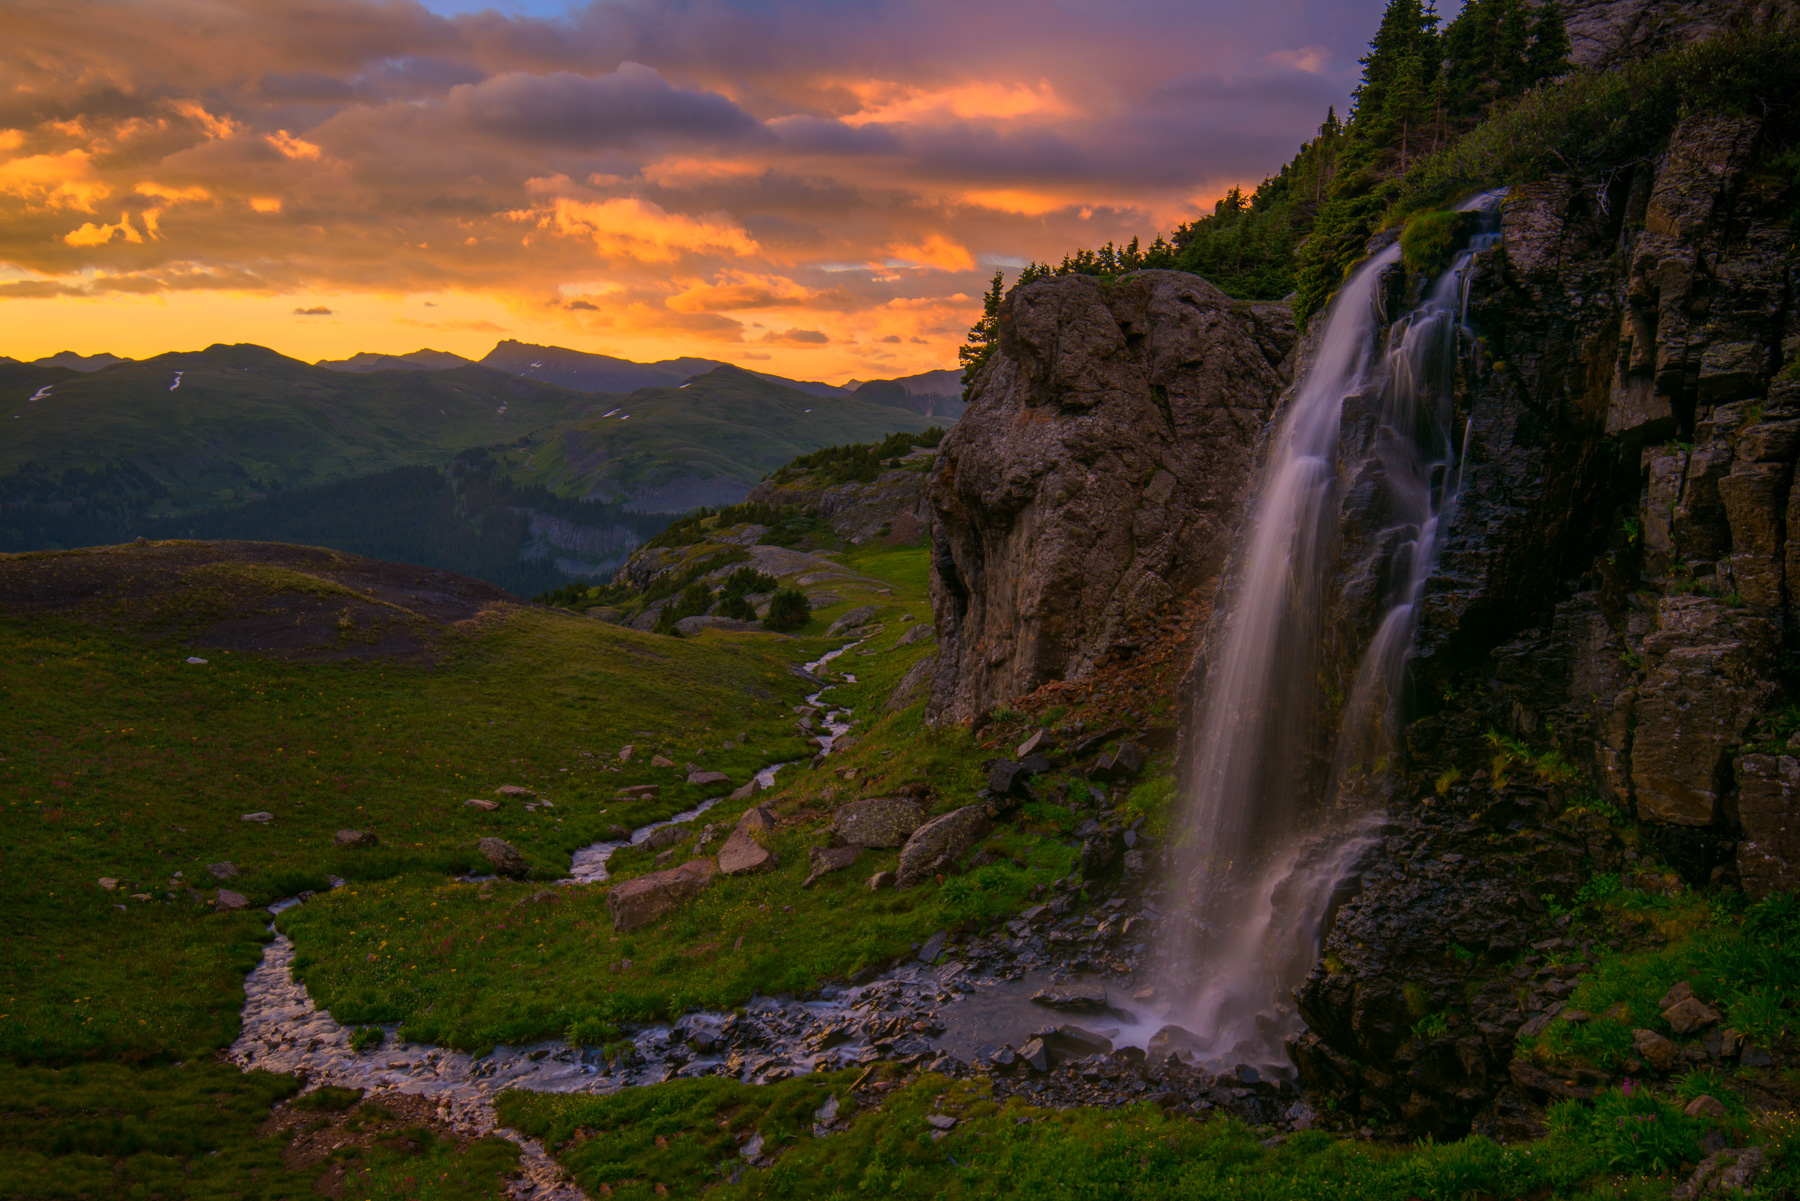 A waterfall in porphyry basin captured at sunset, San Juan Mountains near Silverton, Colorado.